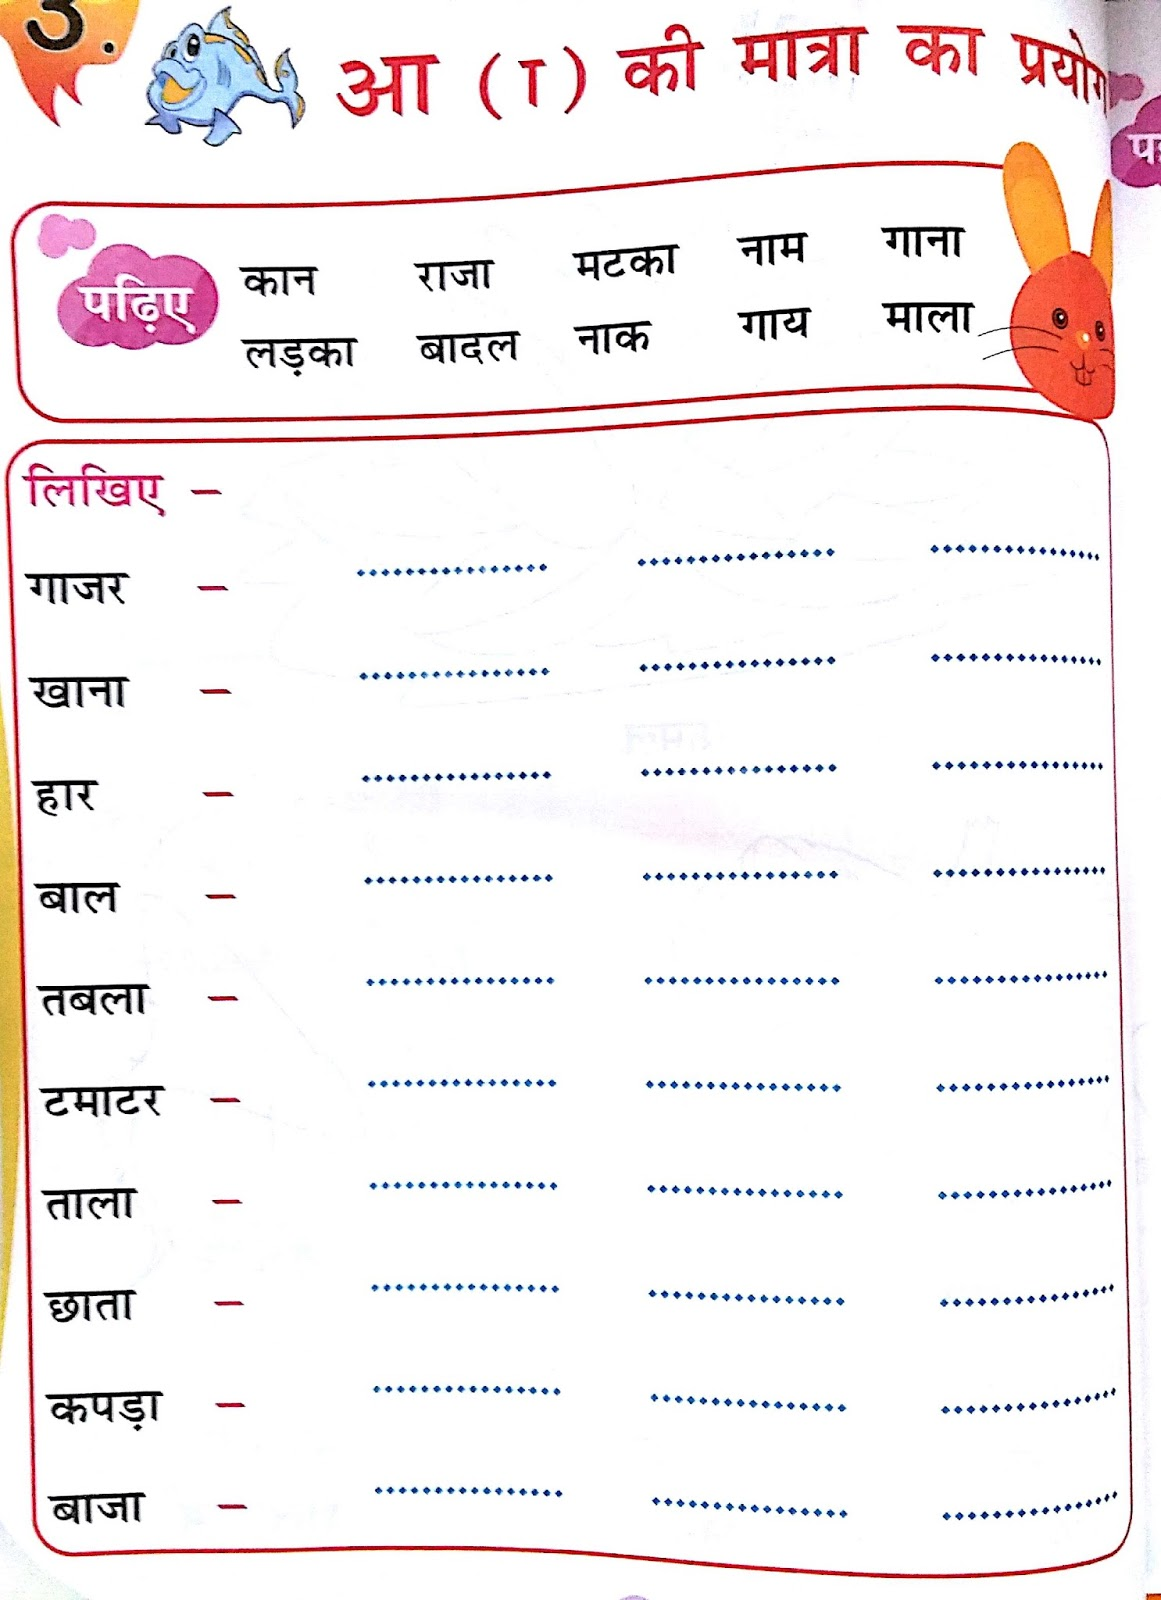 Hindi Grammar Work Sheet Collection For Classes 5 6 7 Amp 8 Matra Work Sheets For Classes 3 4